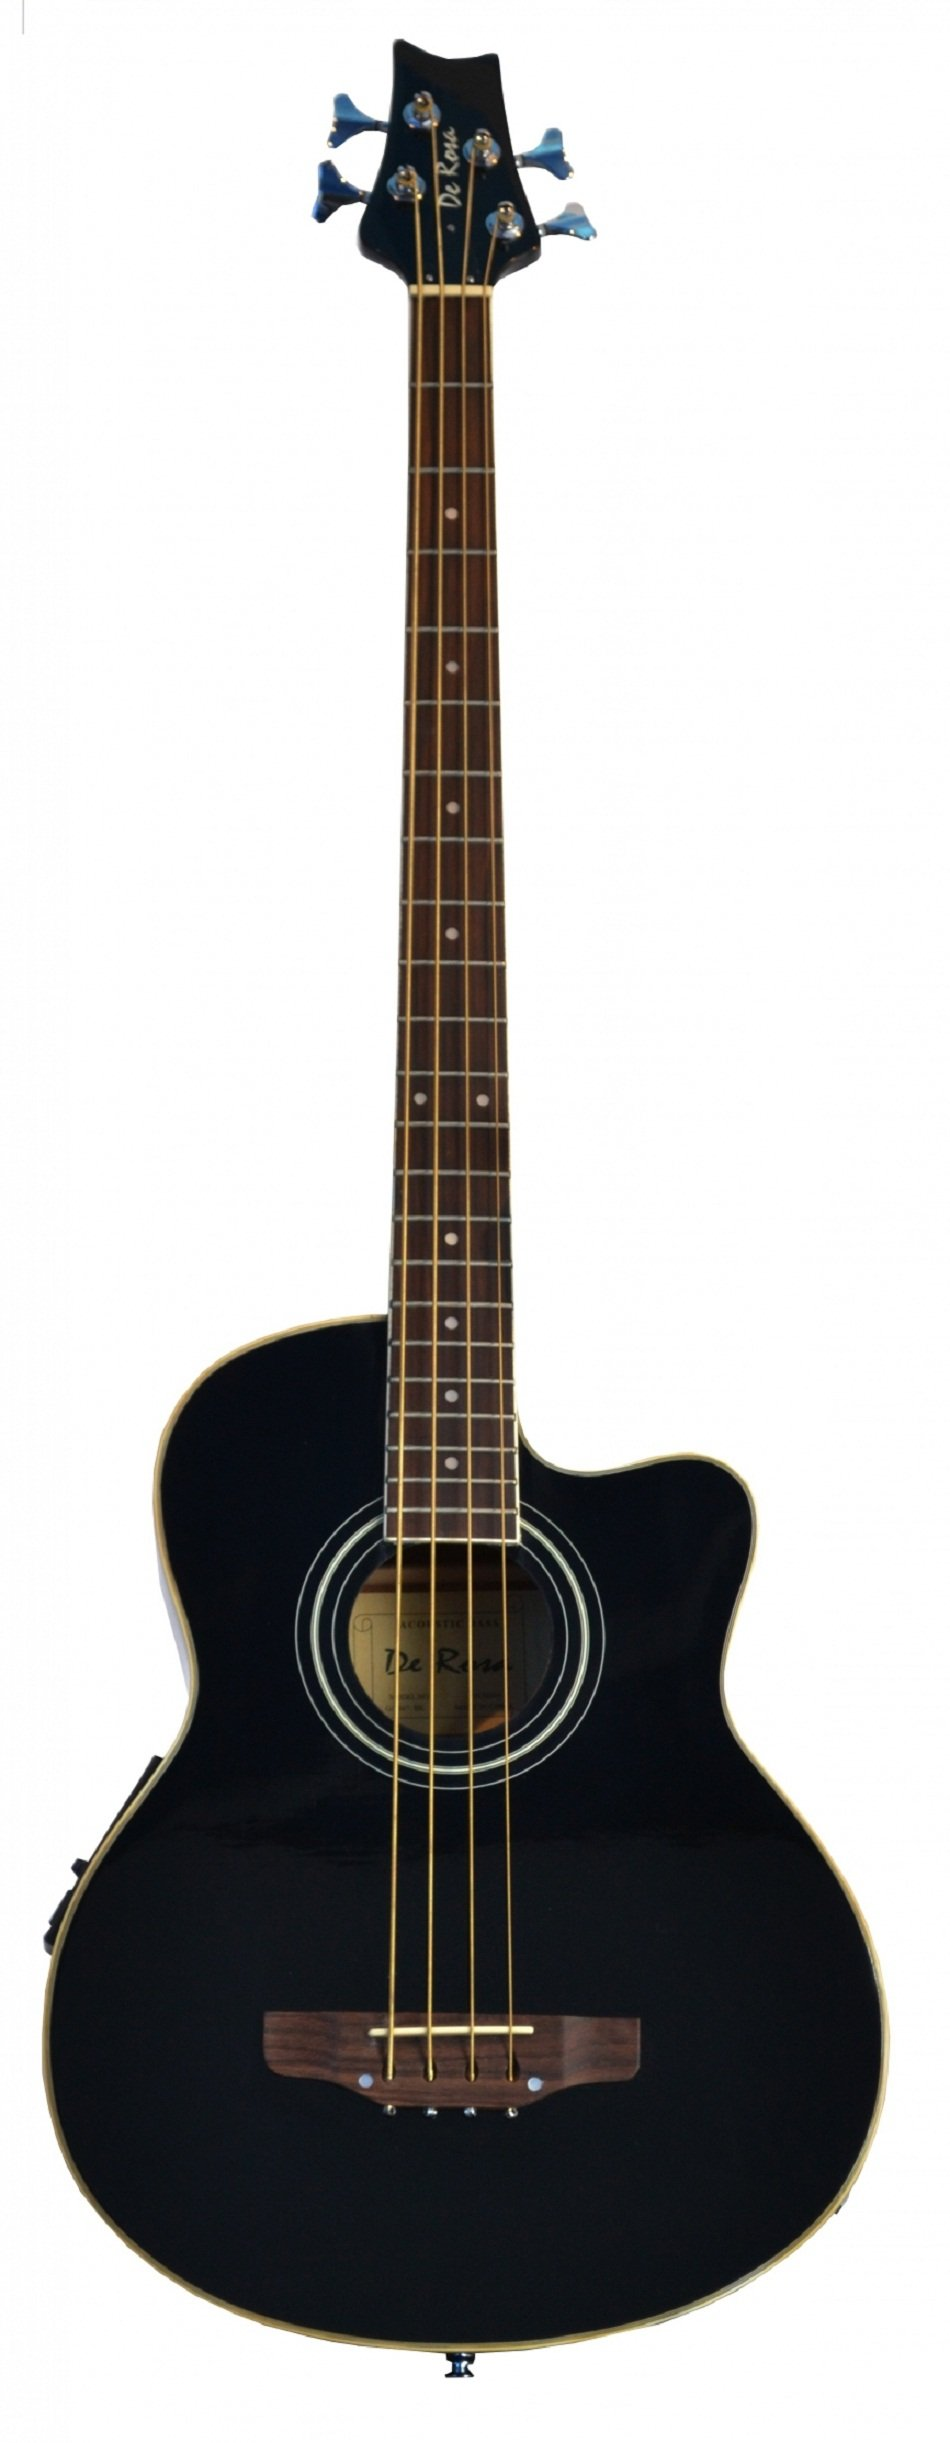 Cutaway Black Acoustic Electric 4 String Bass with 4 EQ & DirectlyCheap(TM) Translucent Blue Medium Guitar Pick by Directly Cheap